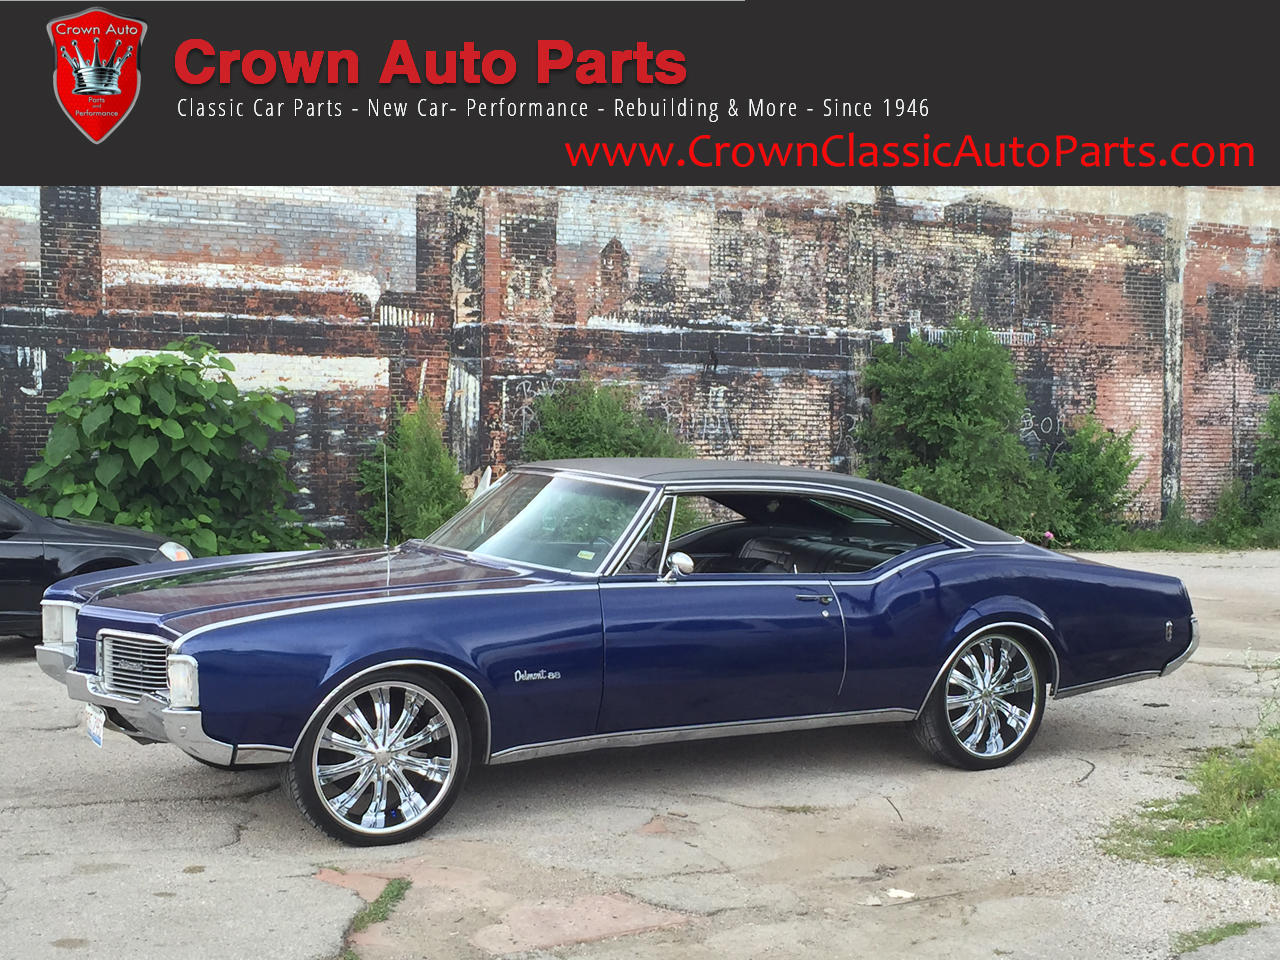 Crown Auto Parts & Rebuilding image 30